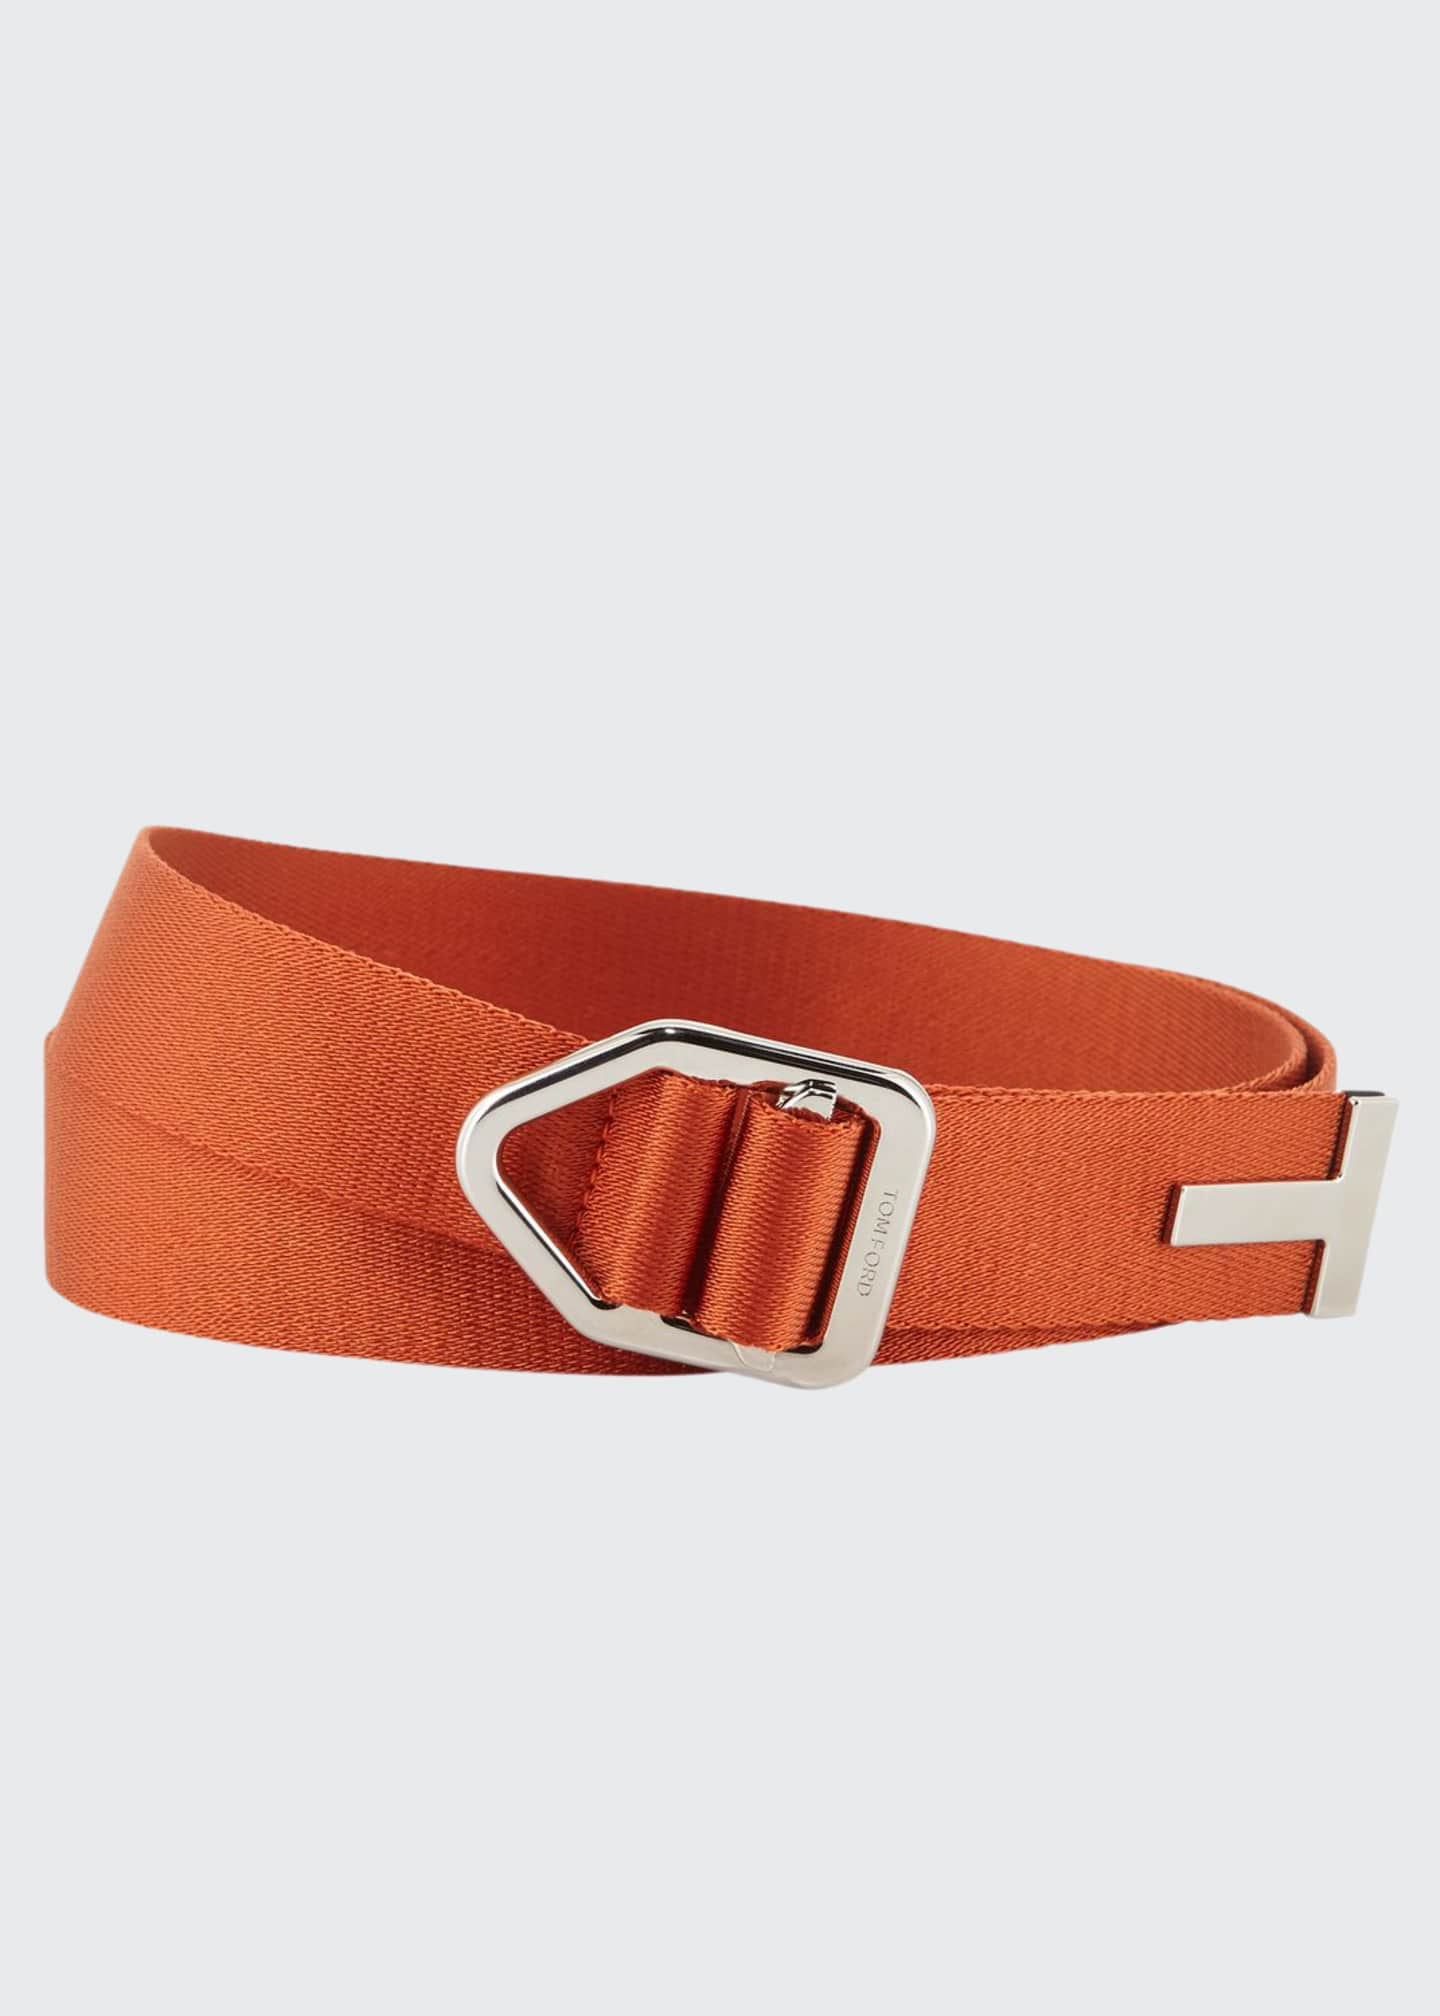 Image 1 of 1: Men's Nylon Belt with Pull-Through Buckle